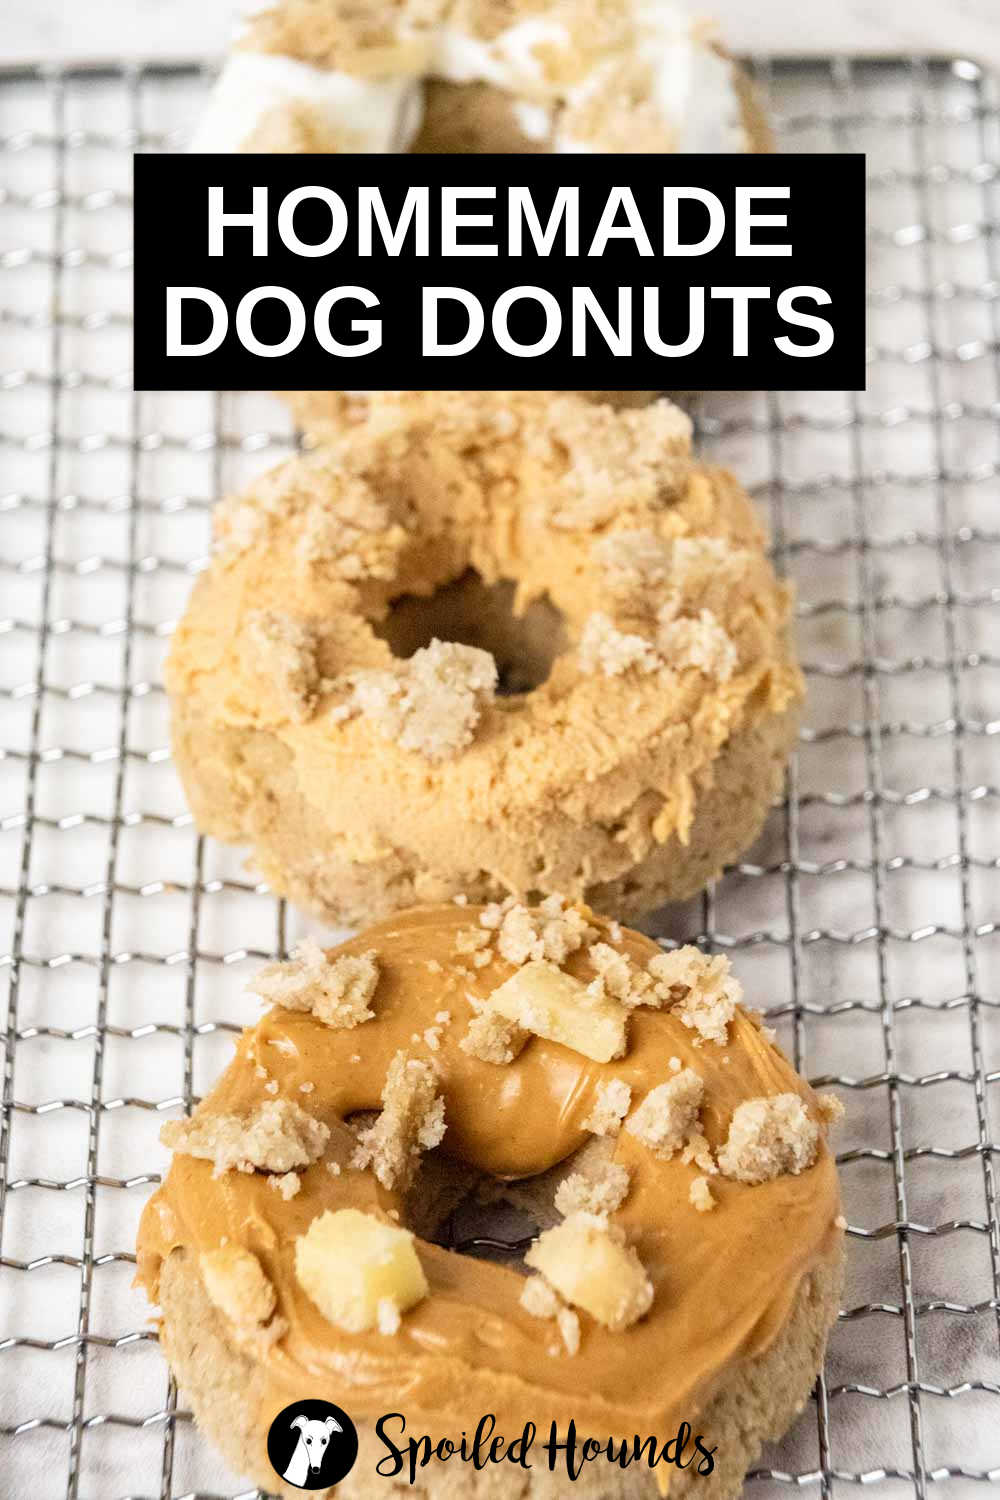 three homemade dog donuts on a wire rack